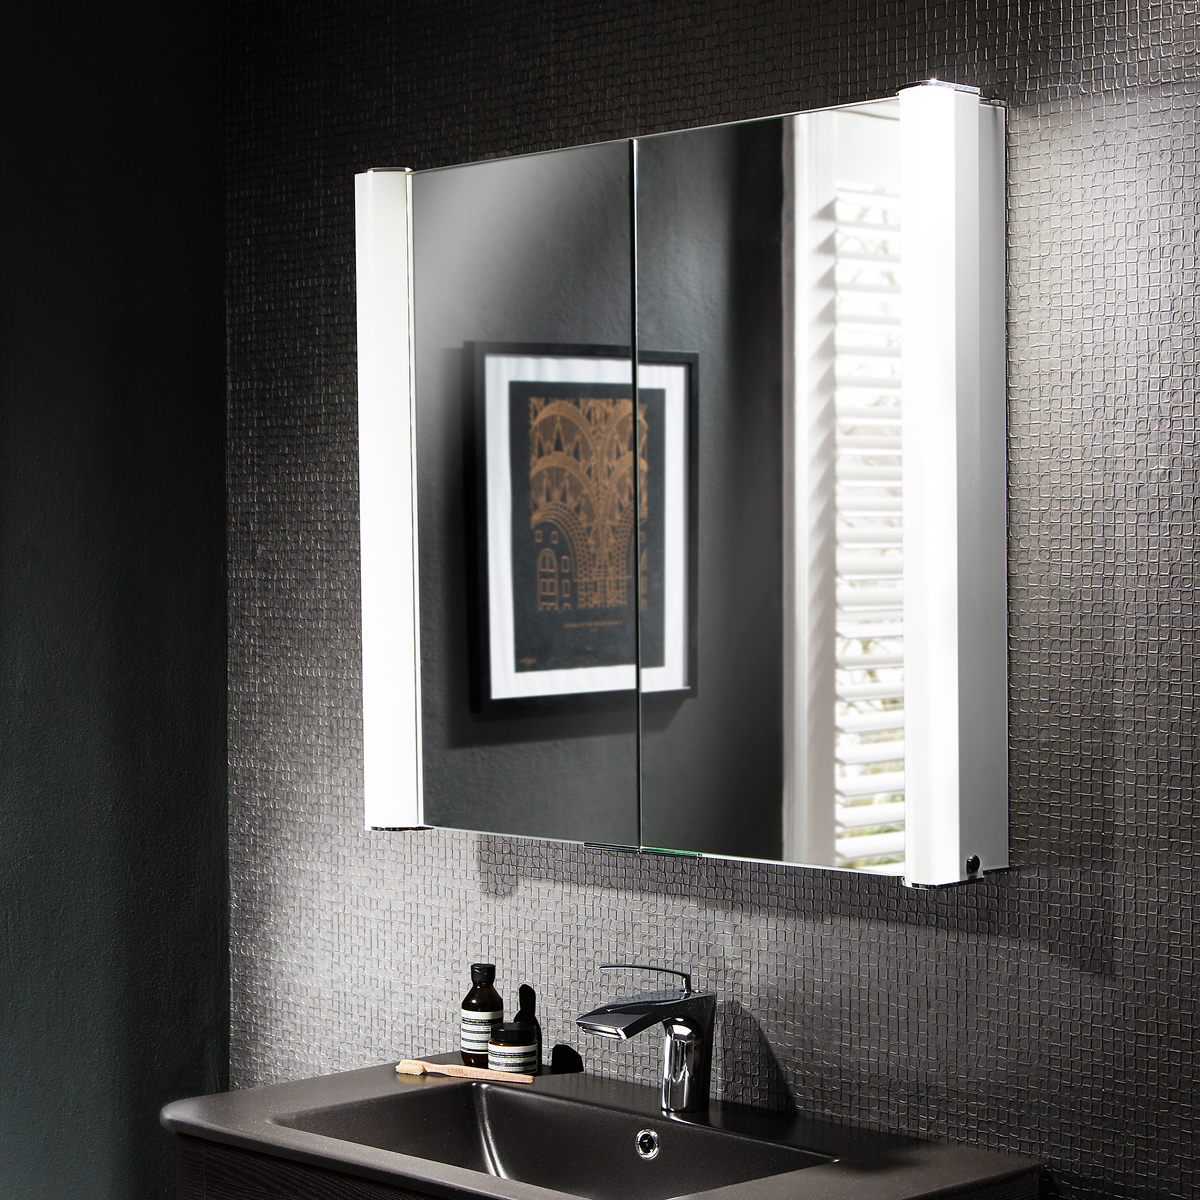 Duo 800mm illuminated mirror cabinet lavo bathrooms and bathroom accessories in cape town for Illuminated mirrors for bathrooms